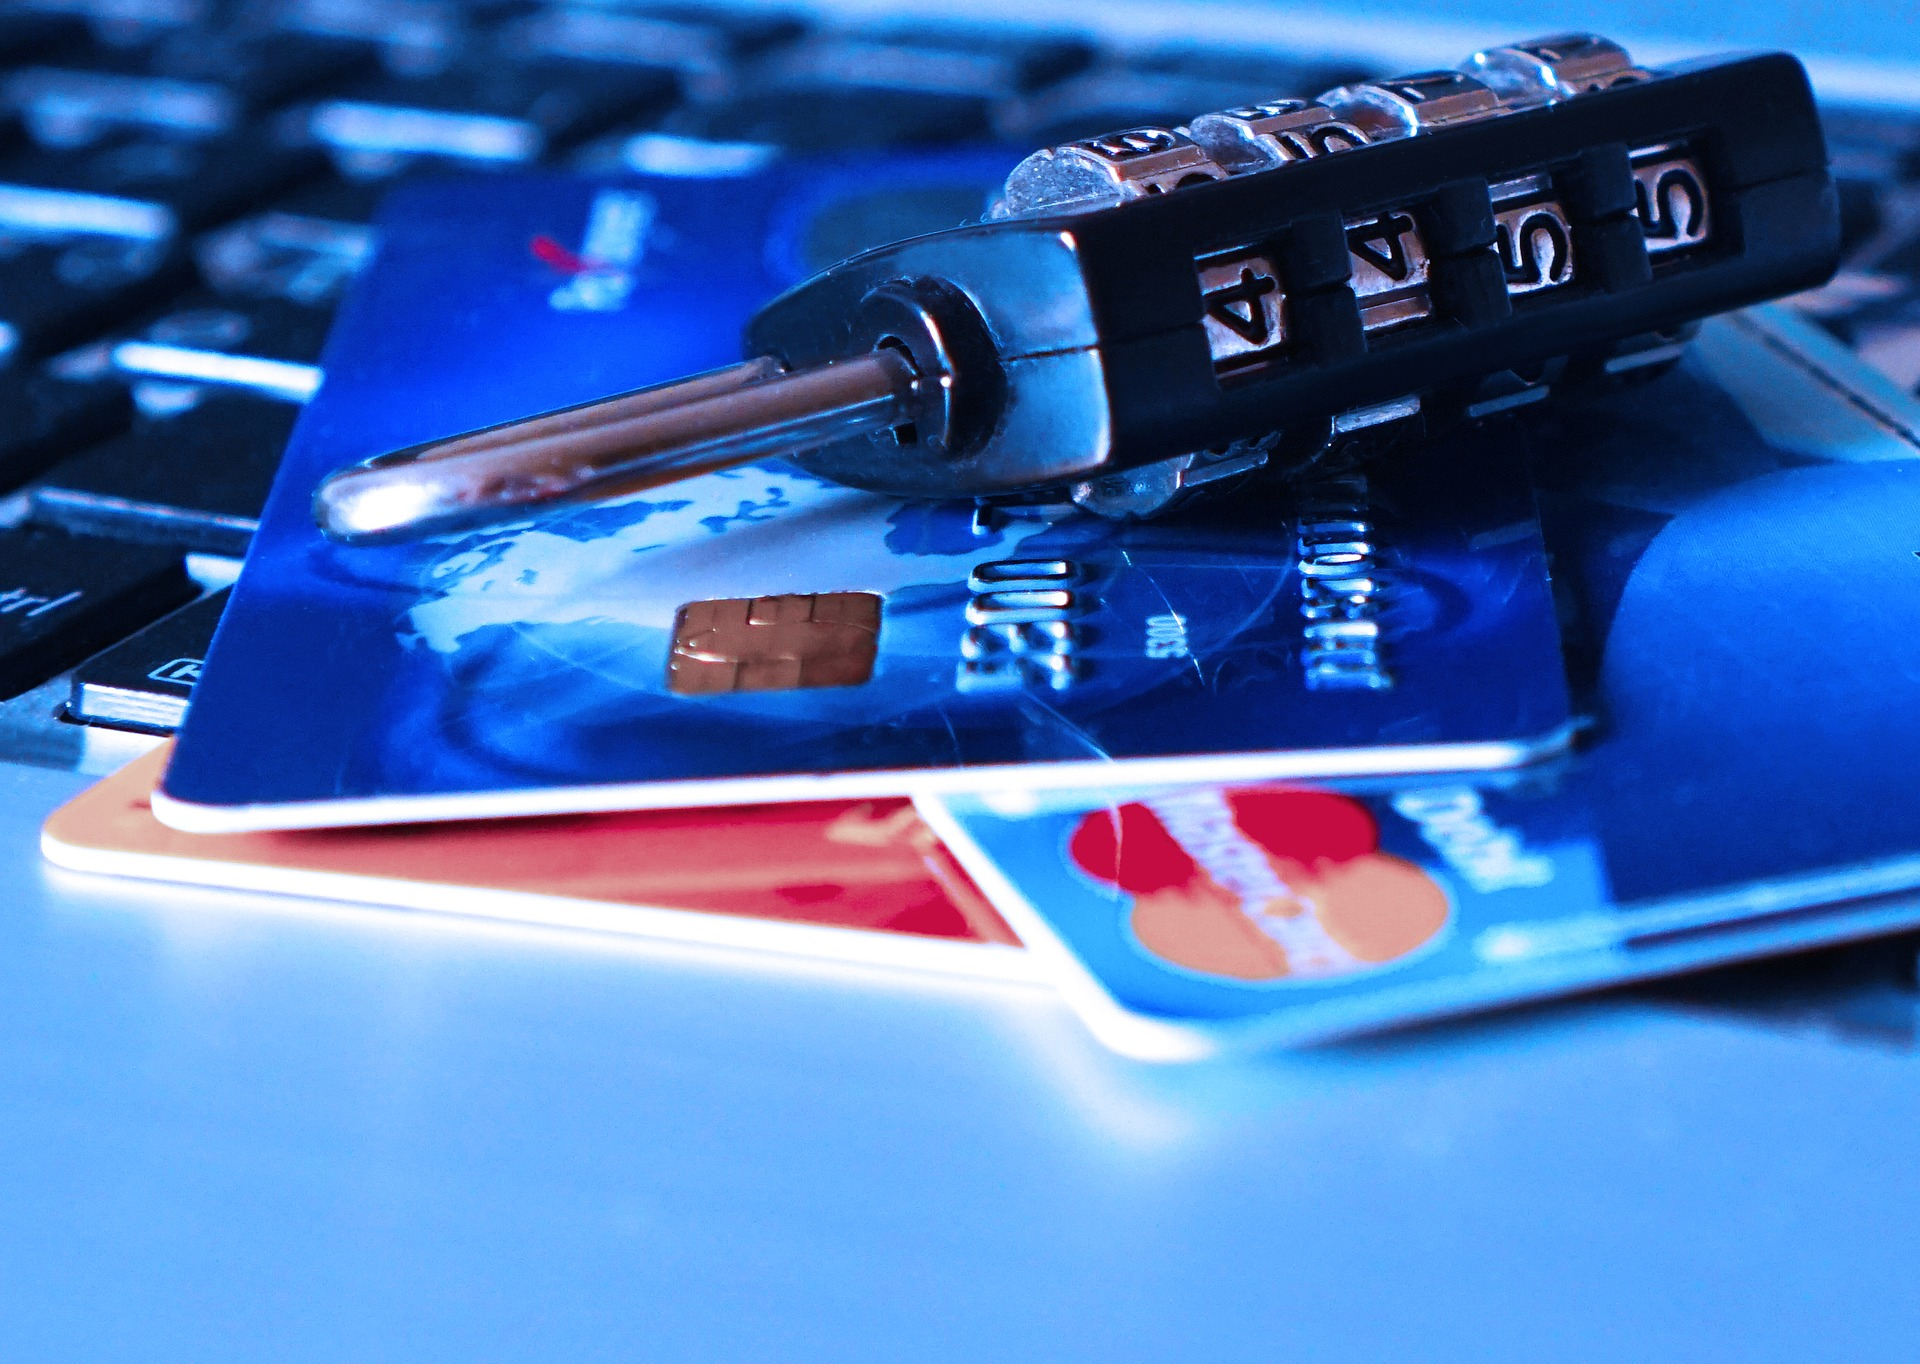 Credit cards stacked with a lock. ECommerce safety and credit card fraud prevention